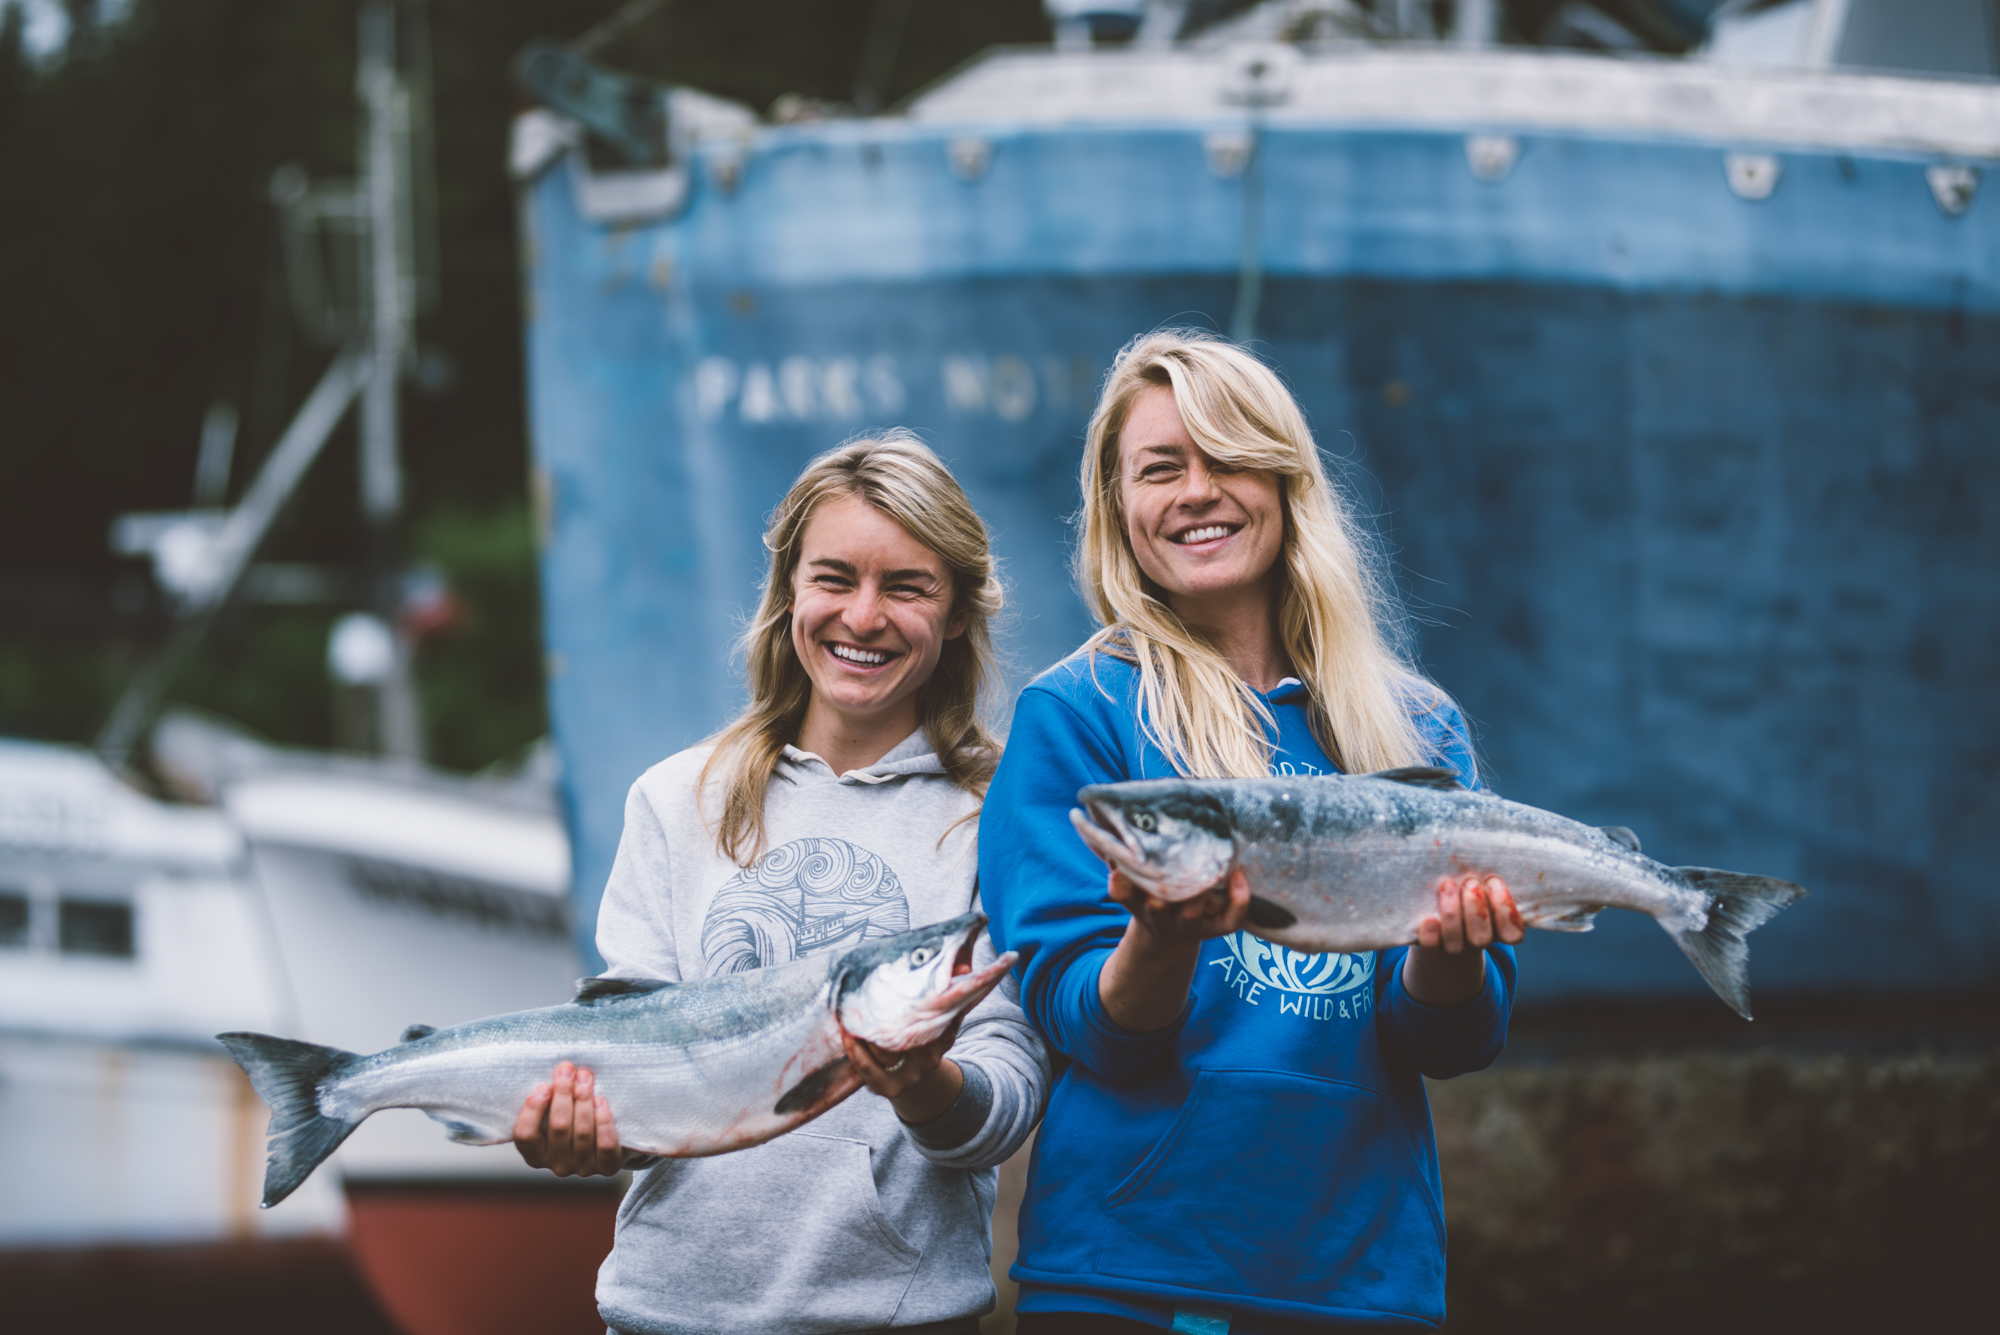 Claire Neaton and Emma Teal Laukitis — also known as the Salmon Sisters — started the Give Fish Project in 2016, an initiative that sets aside 1 percent of sales to buy wild Alaskan seafood that is donated to the Food Bank of Alaska. (Photo courtesy of the Salmon Sisters)